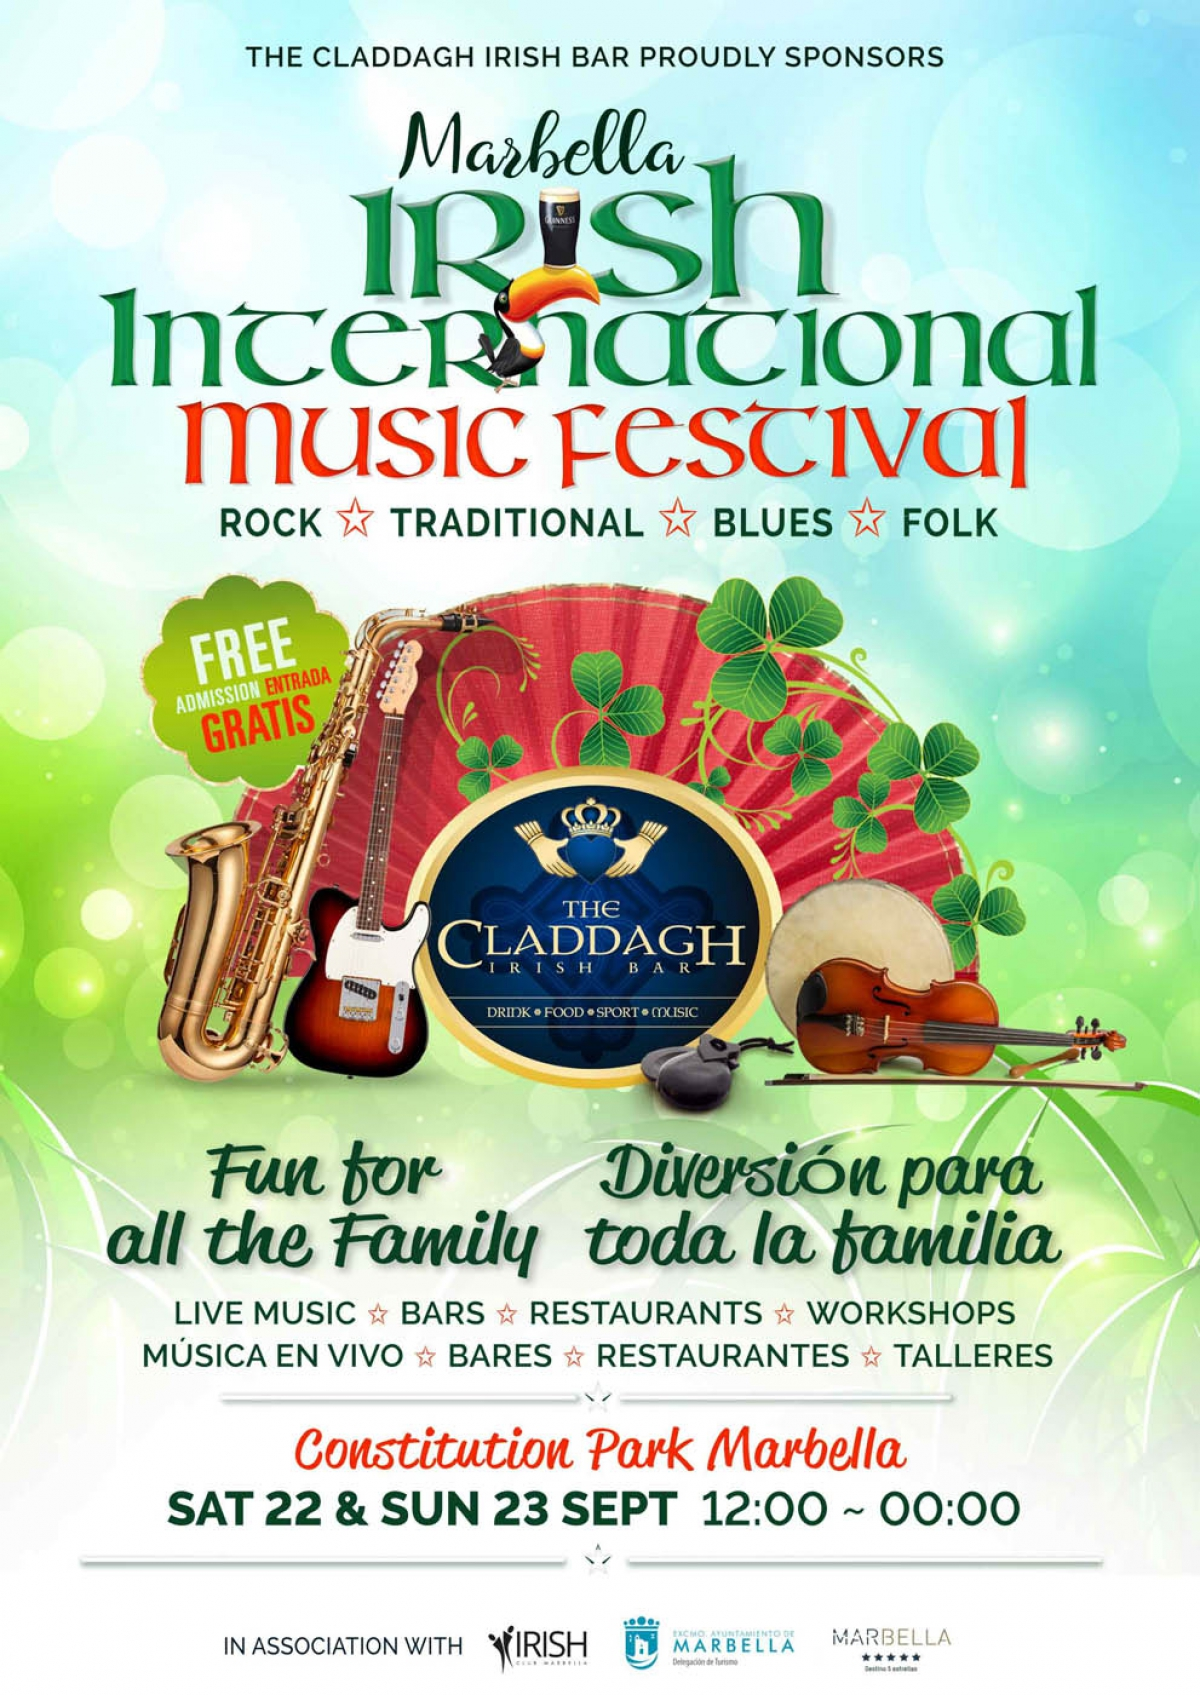 El Parque de la Constitución acoge este sábado y domingo el Irish International Music Festival